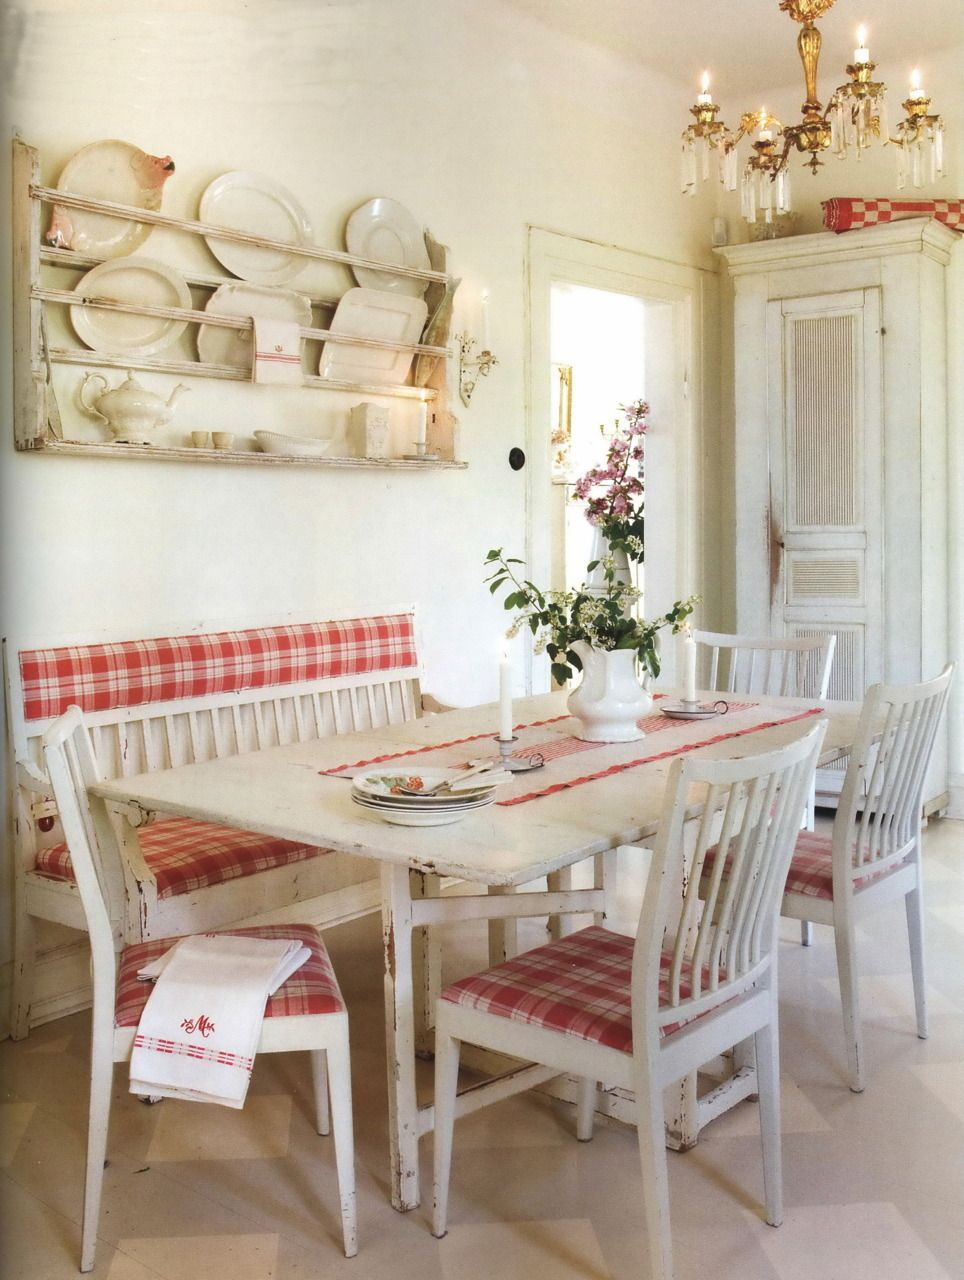 Red and white scandinavian style breakfast nook love the upholstered bench cottage chic - Porte shabby chic ...